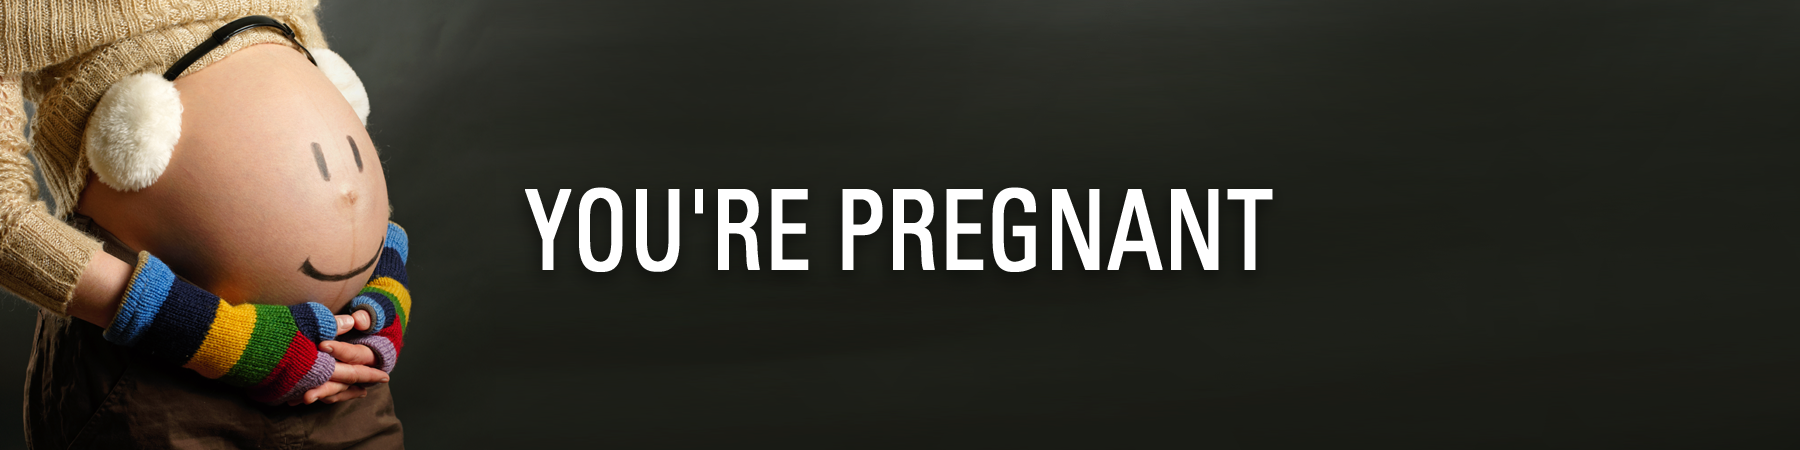 YOU'RE PREGNANT